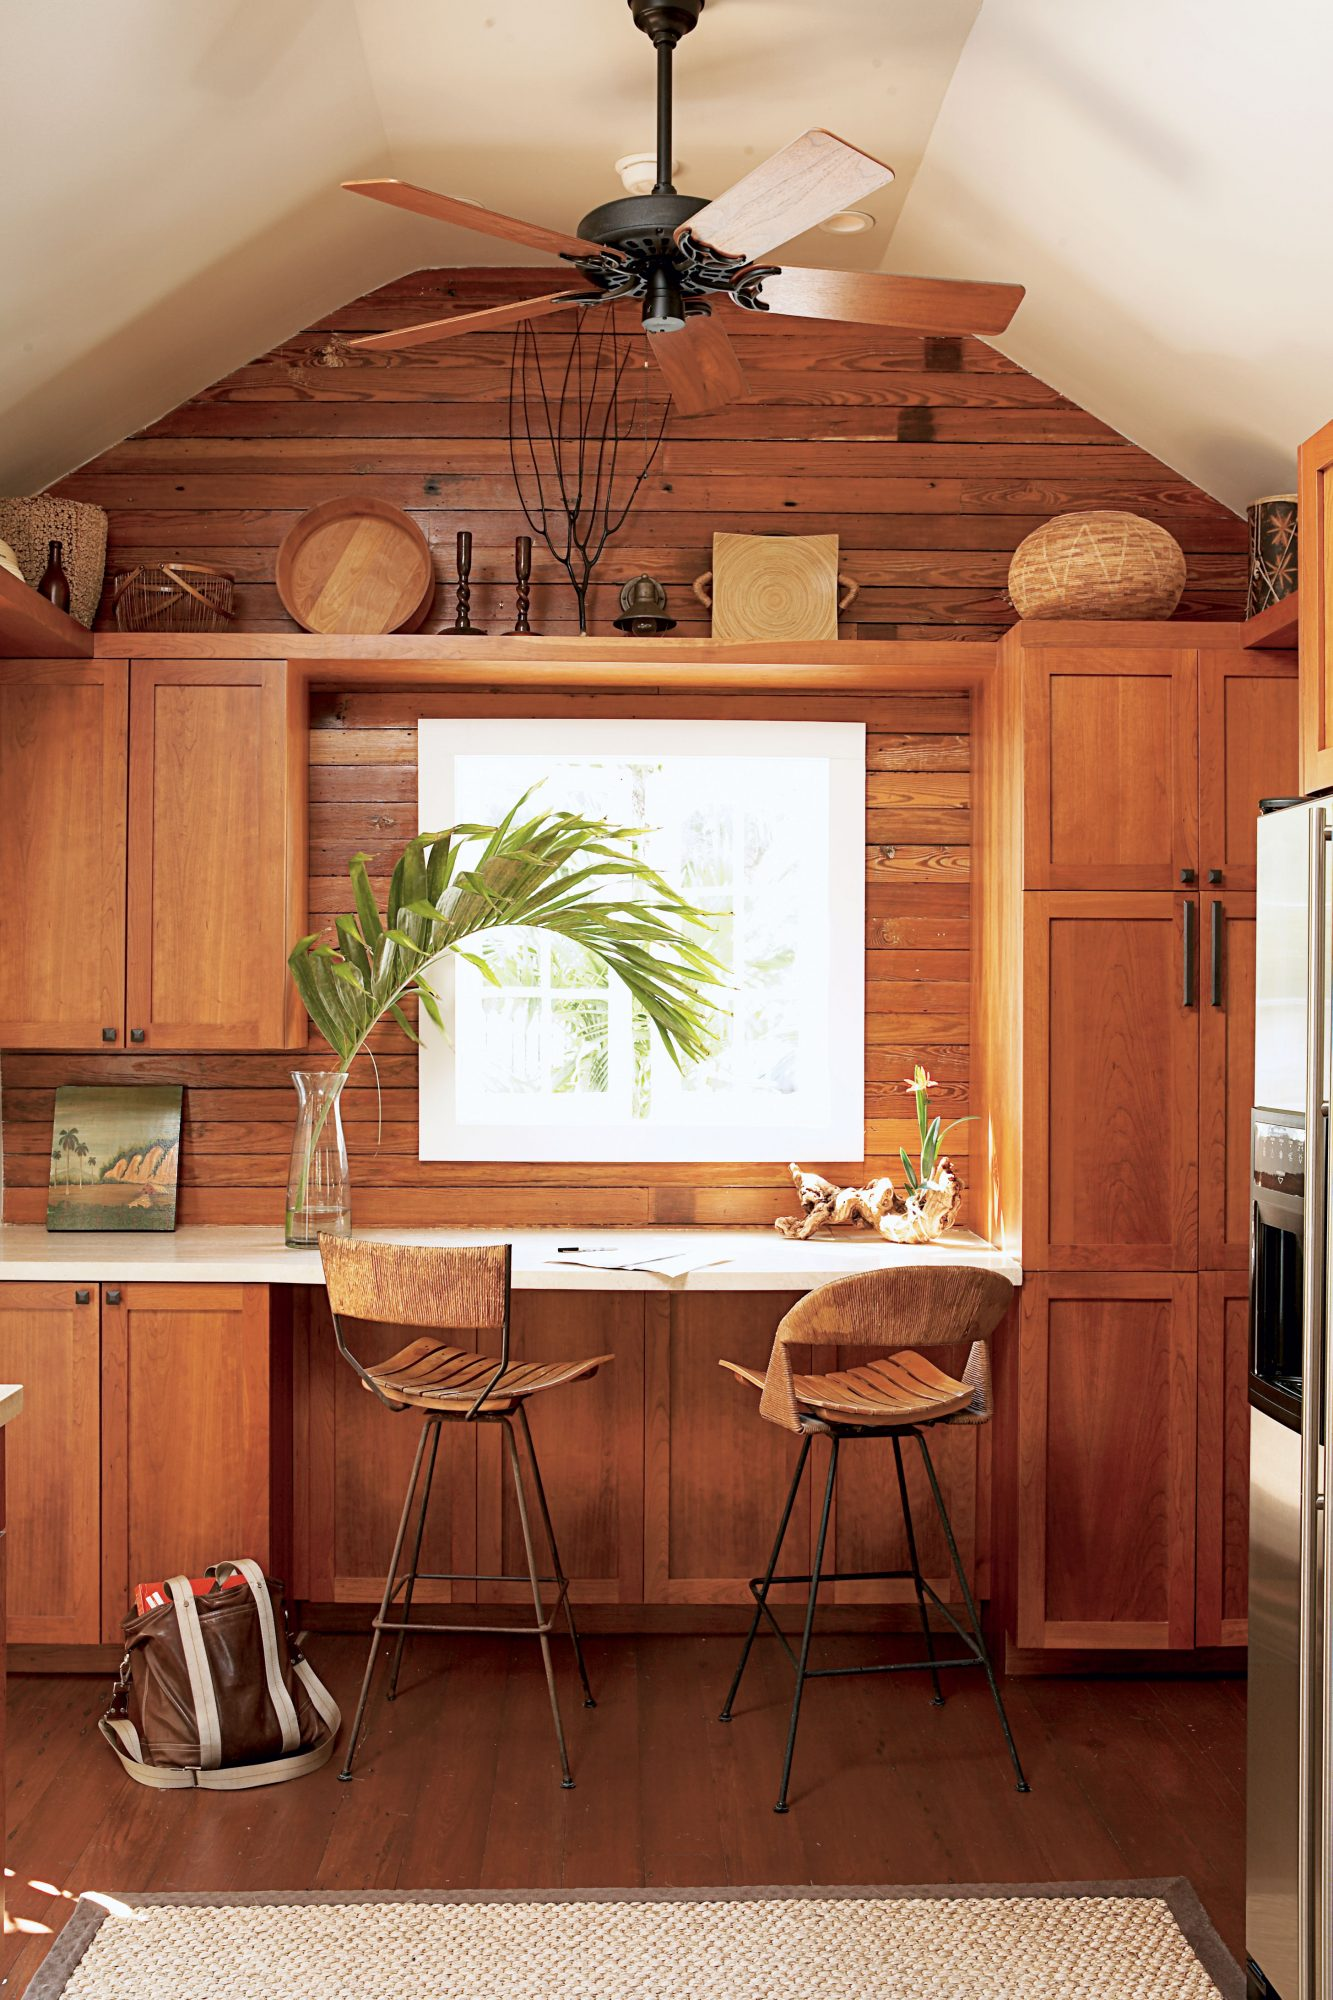 Our 25 Prettiest Island Rooms: Island Time